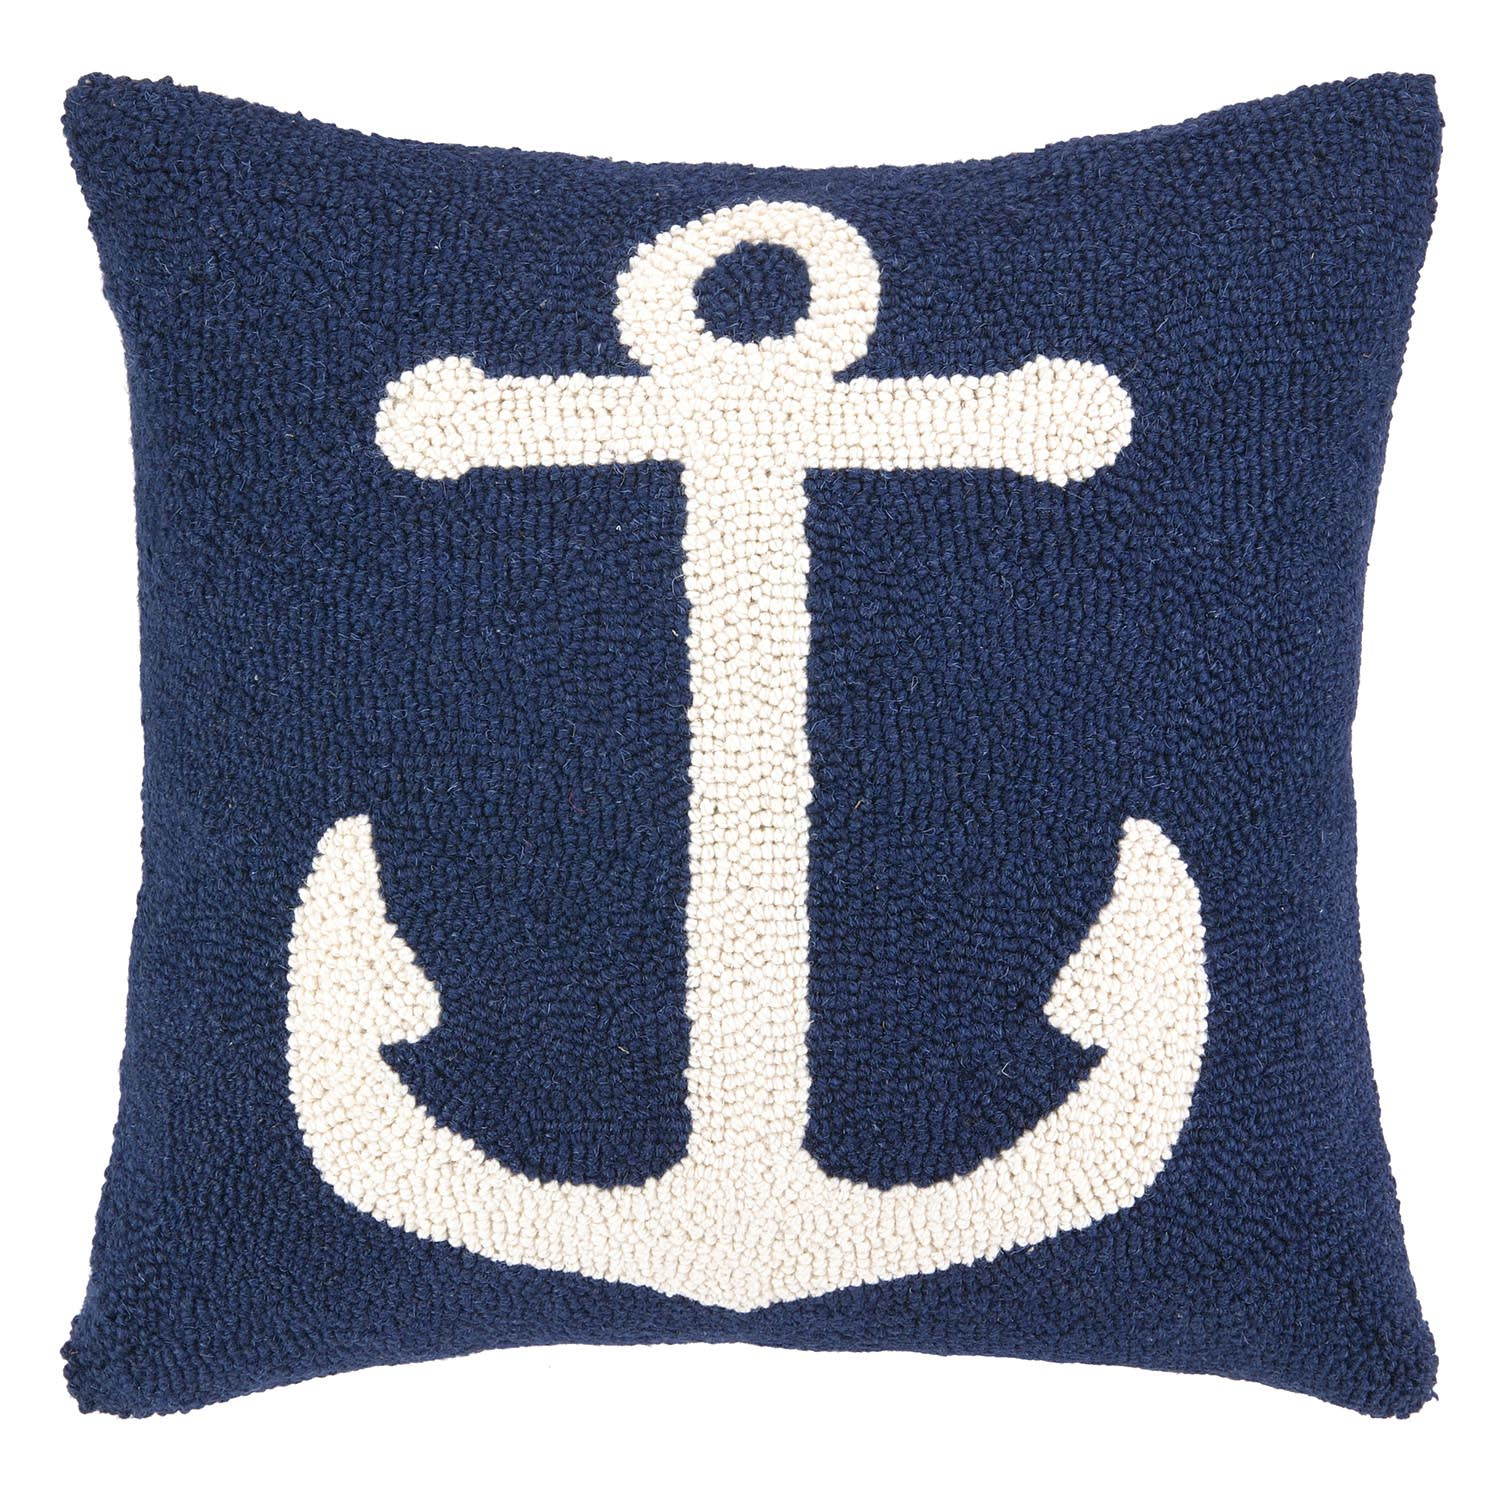 Navy Blue And White Throw Pillows Best Decor Things